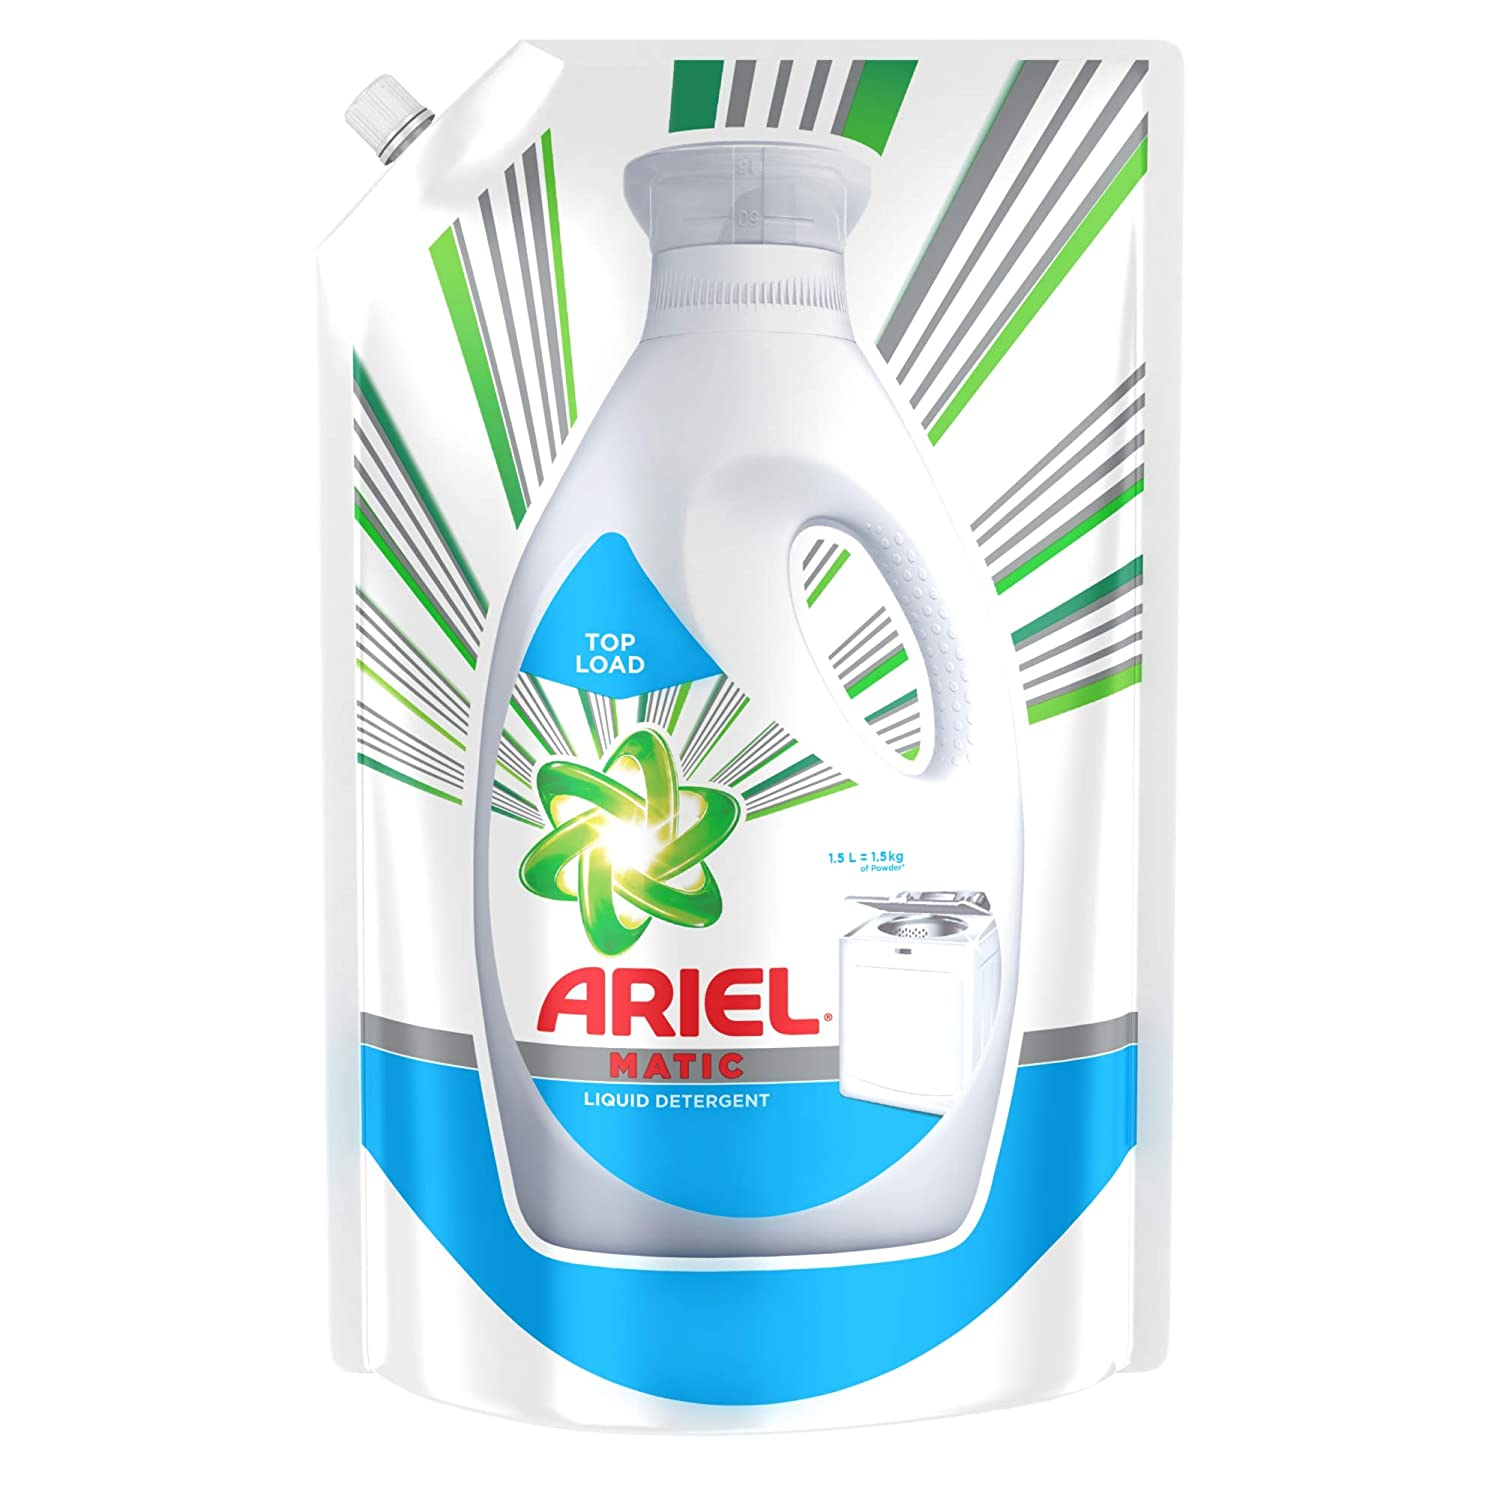 Ariel Matic Liquid Detergent Top Load 1.5 Litre Refill Pack for ₹221